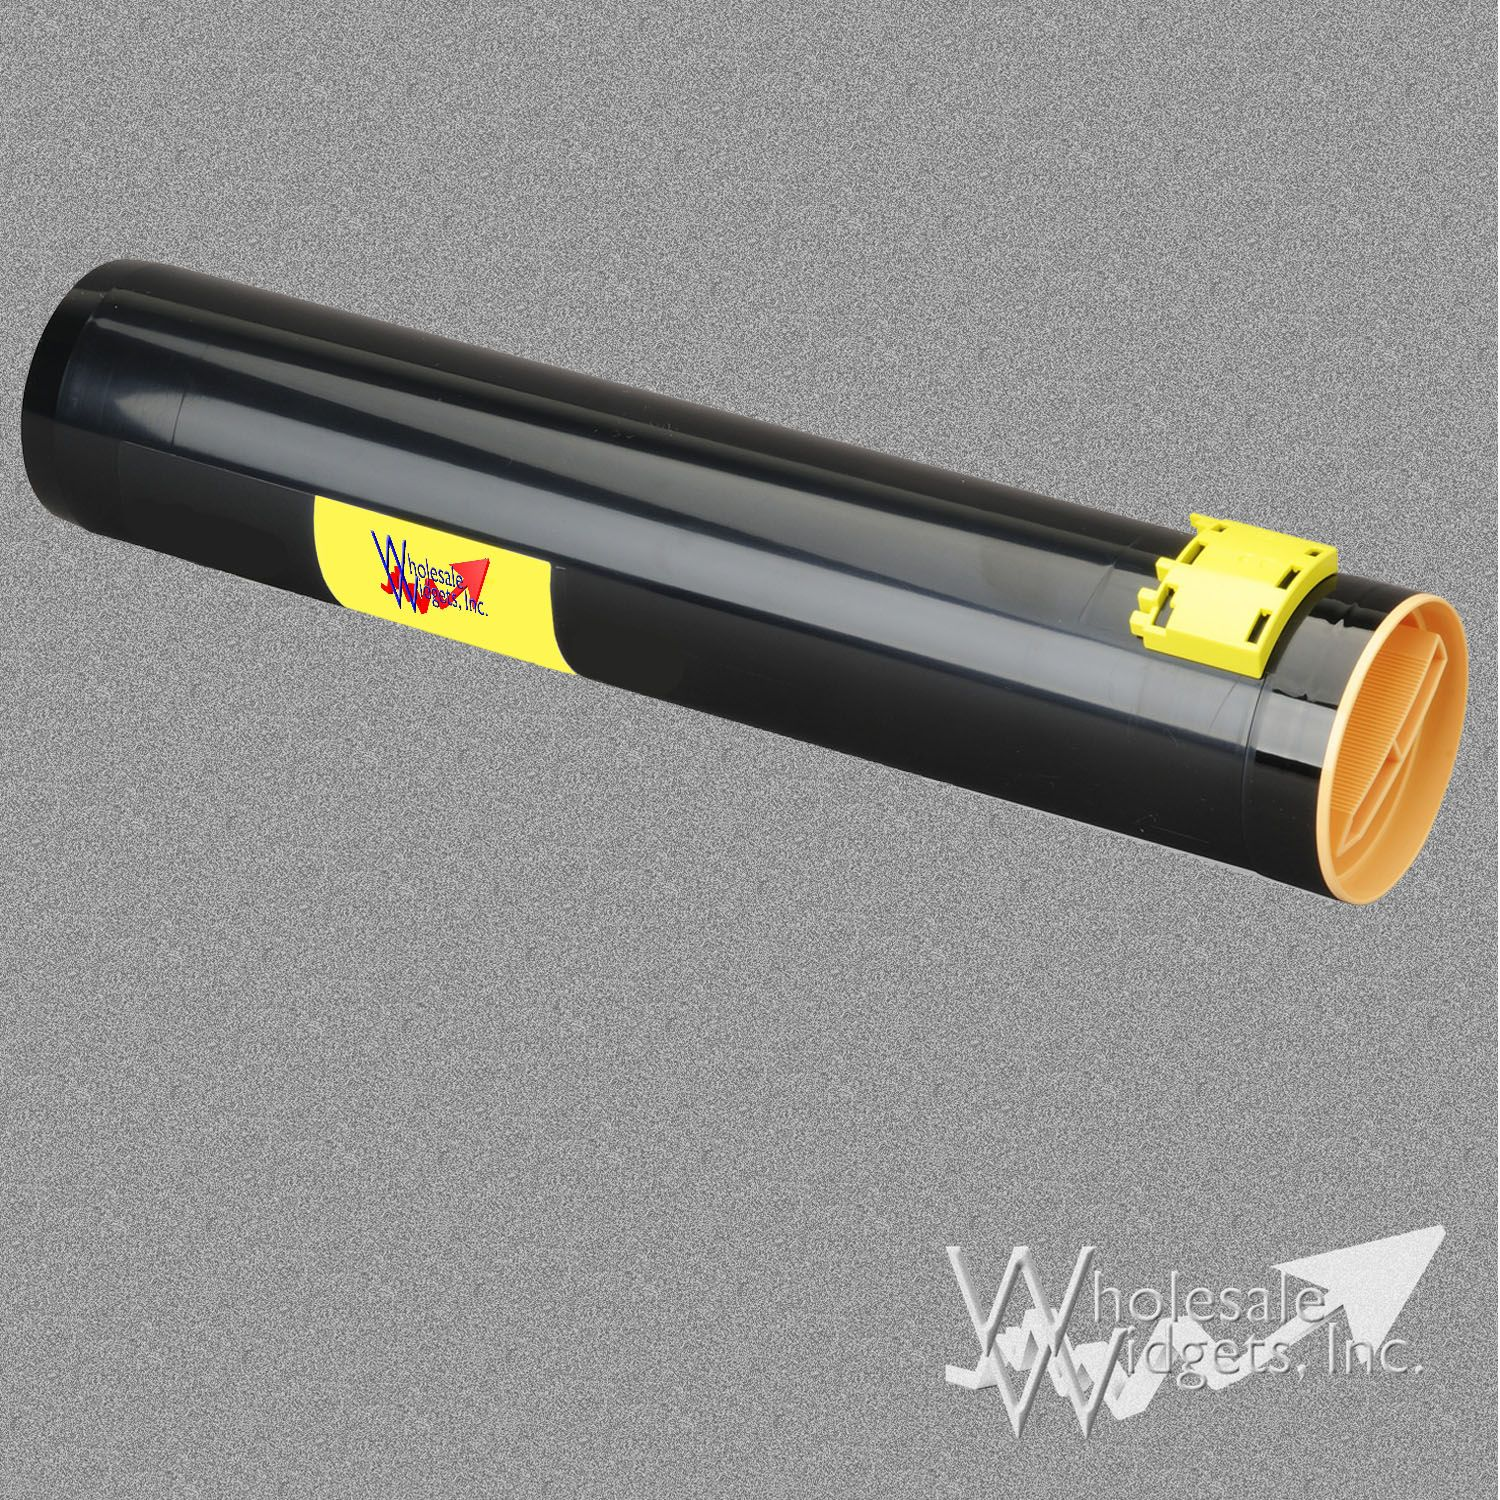 Yellow Toner Cartridge for Xerox 106R01162 Phaser 7760 25,000 Page Yield